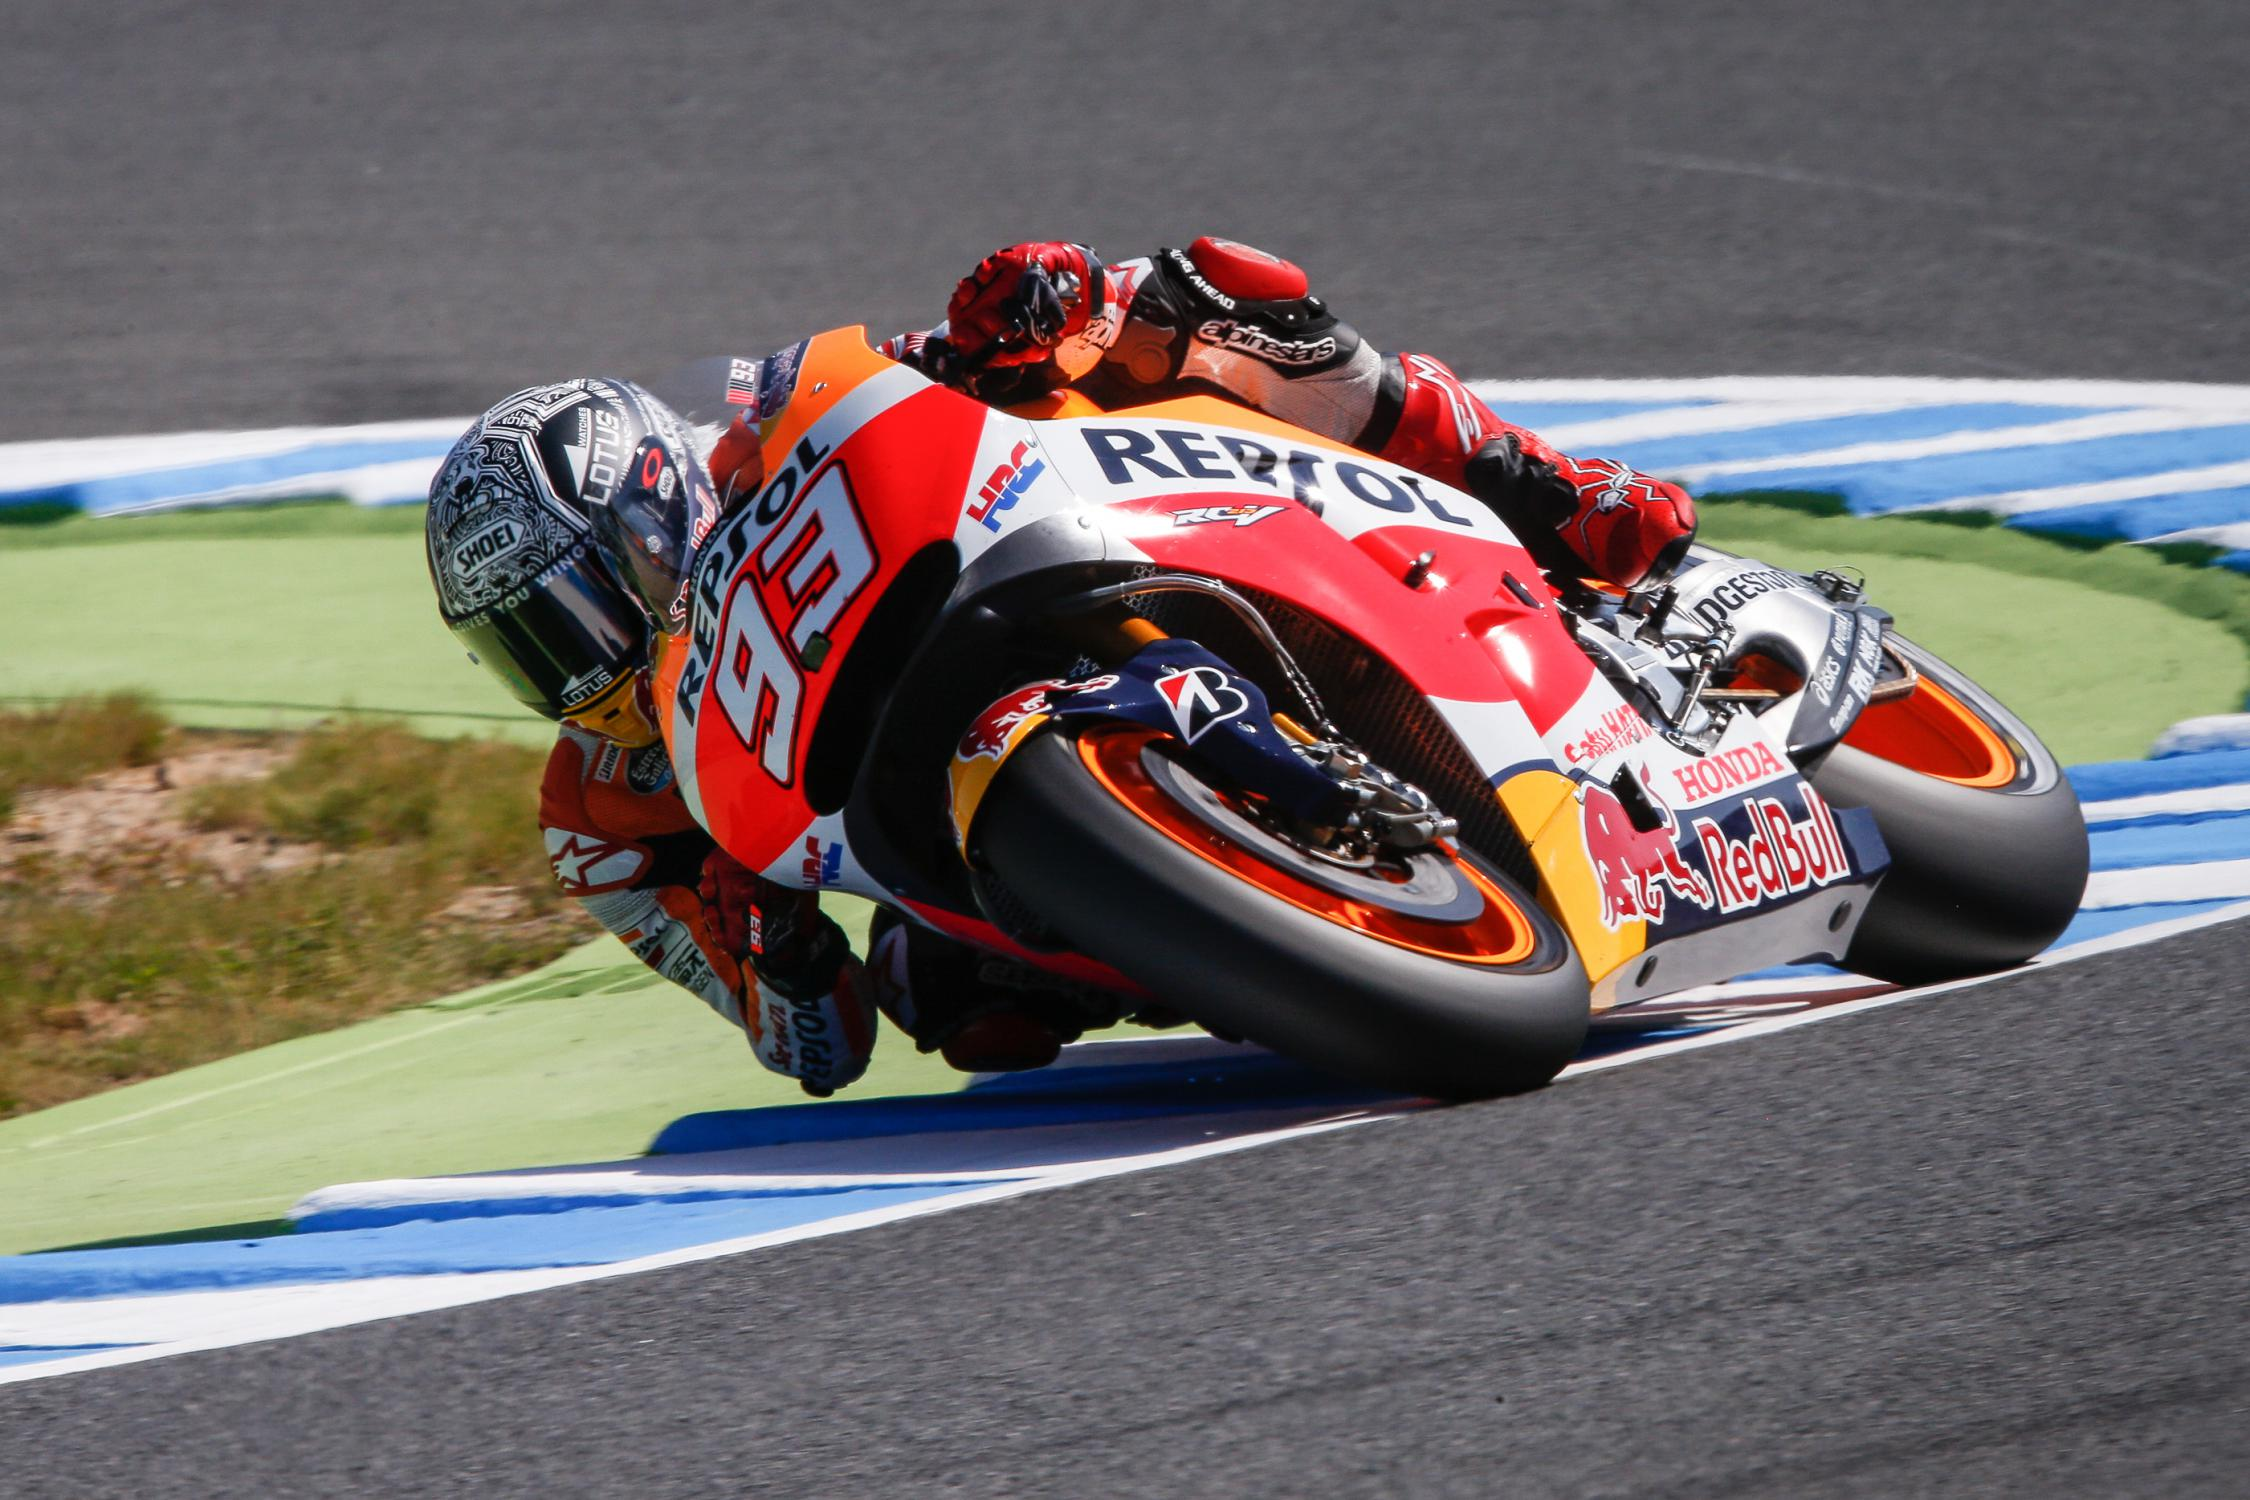 Lorenzo on Pole after Leading FP3 and Fiercely Battling Rossi in Q2 at Motegi - autoevolution